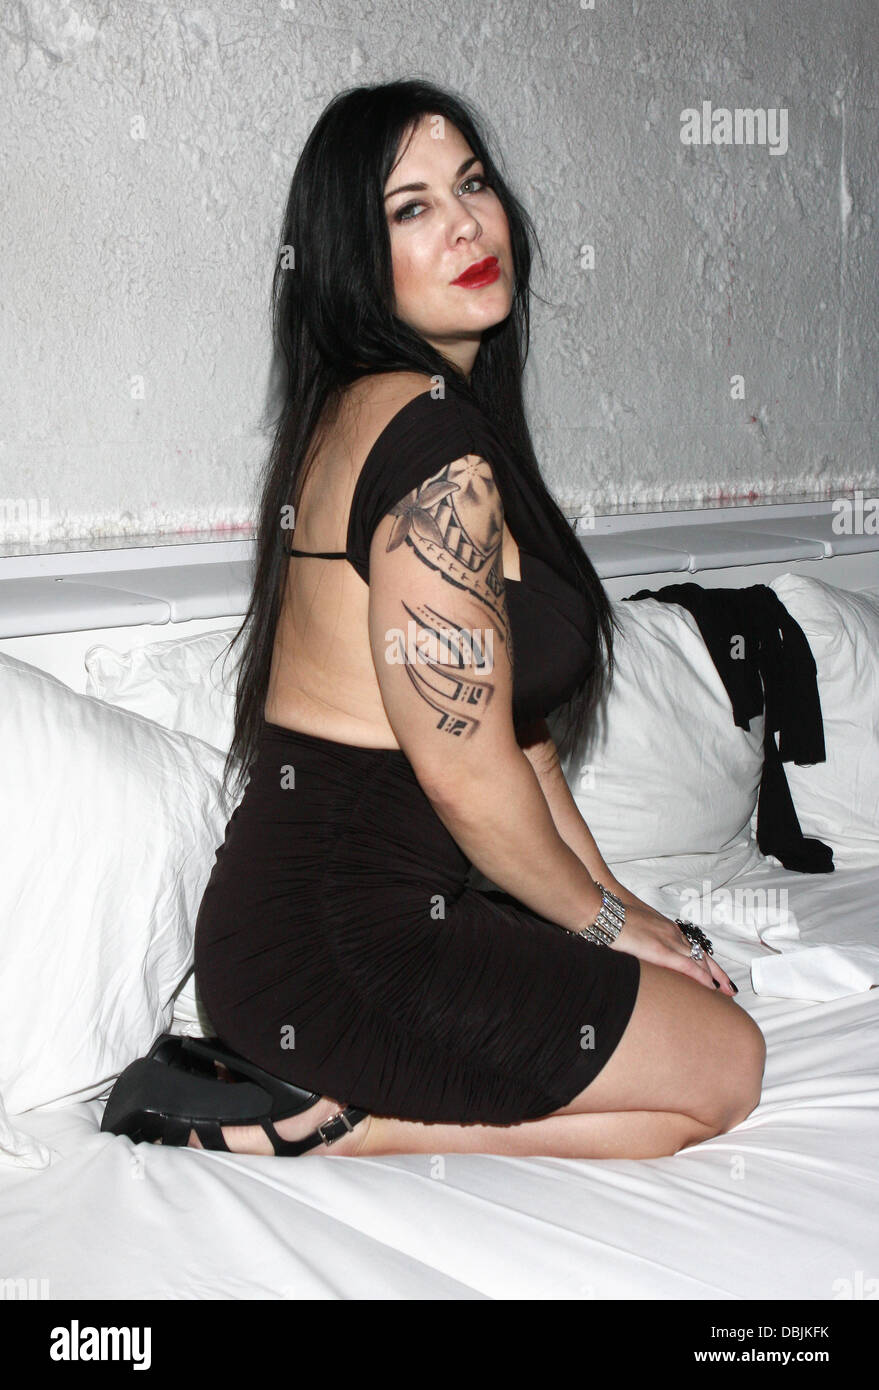 Backdoor To Chyna Pics chyna former professional wrestler and current adult film